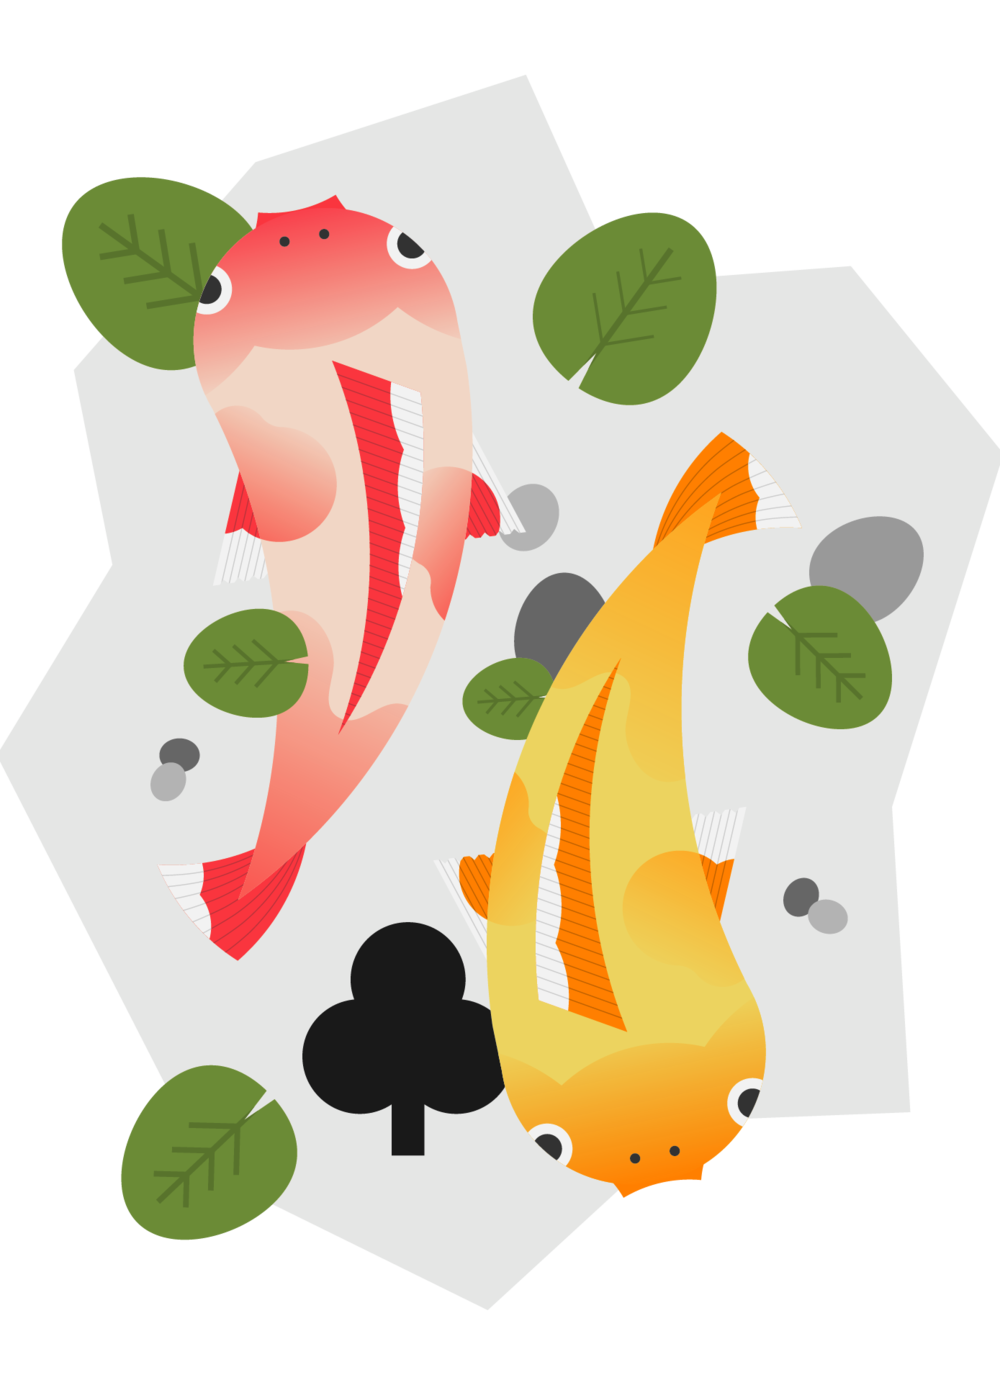 Koi: First iteration